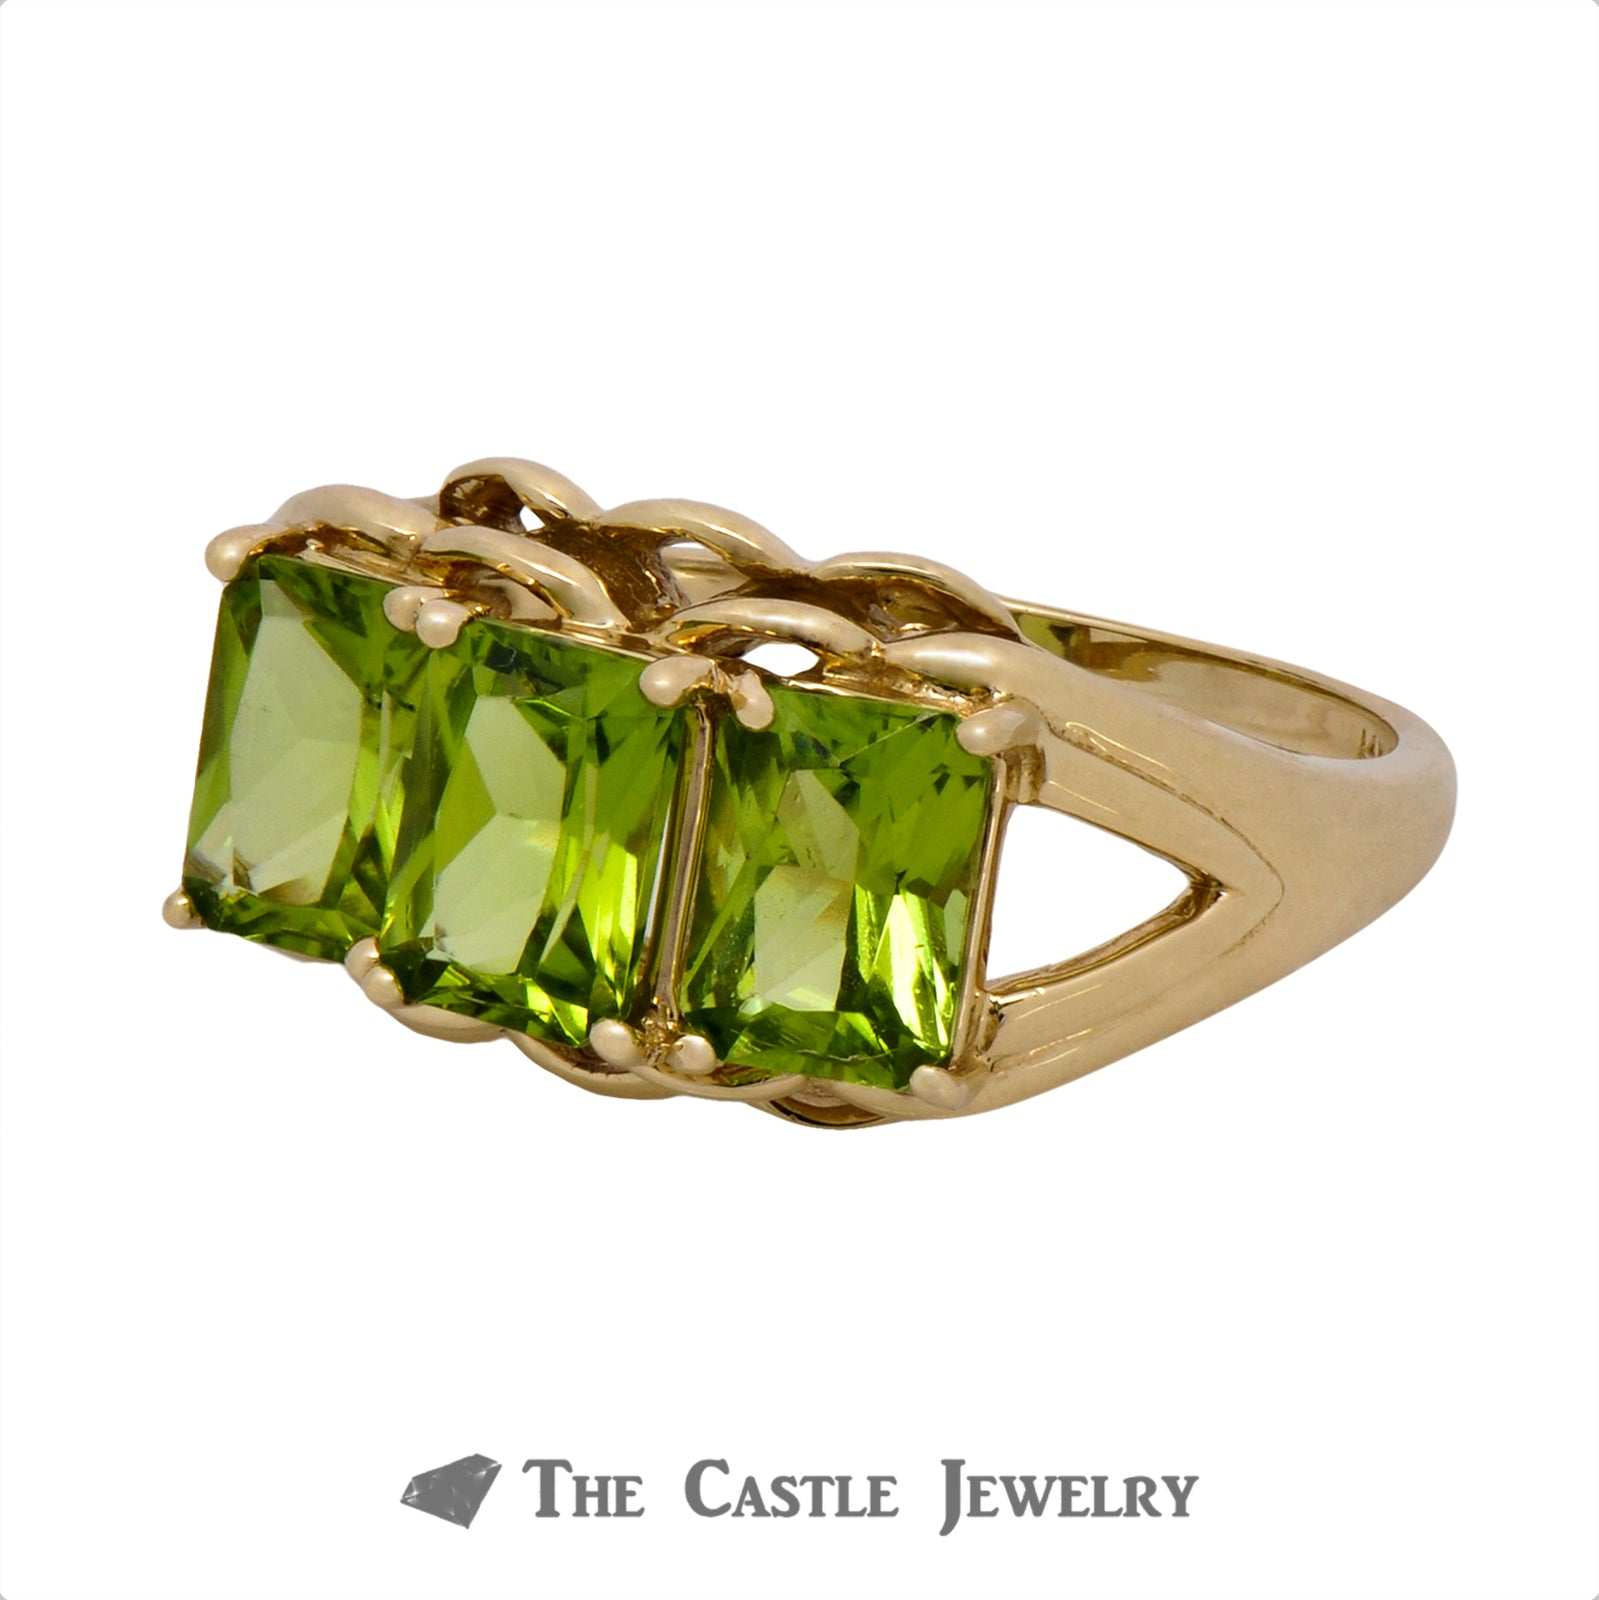 Lovely Three Stone Emerald Cut Peridot Ring Crafted in 14k Yellow Gold-2